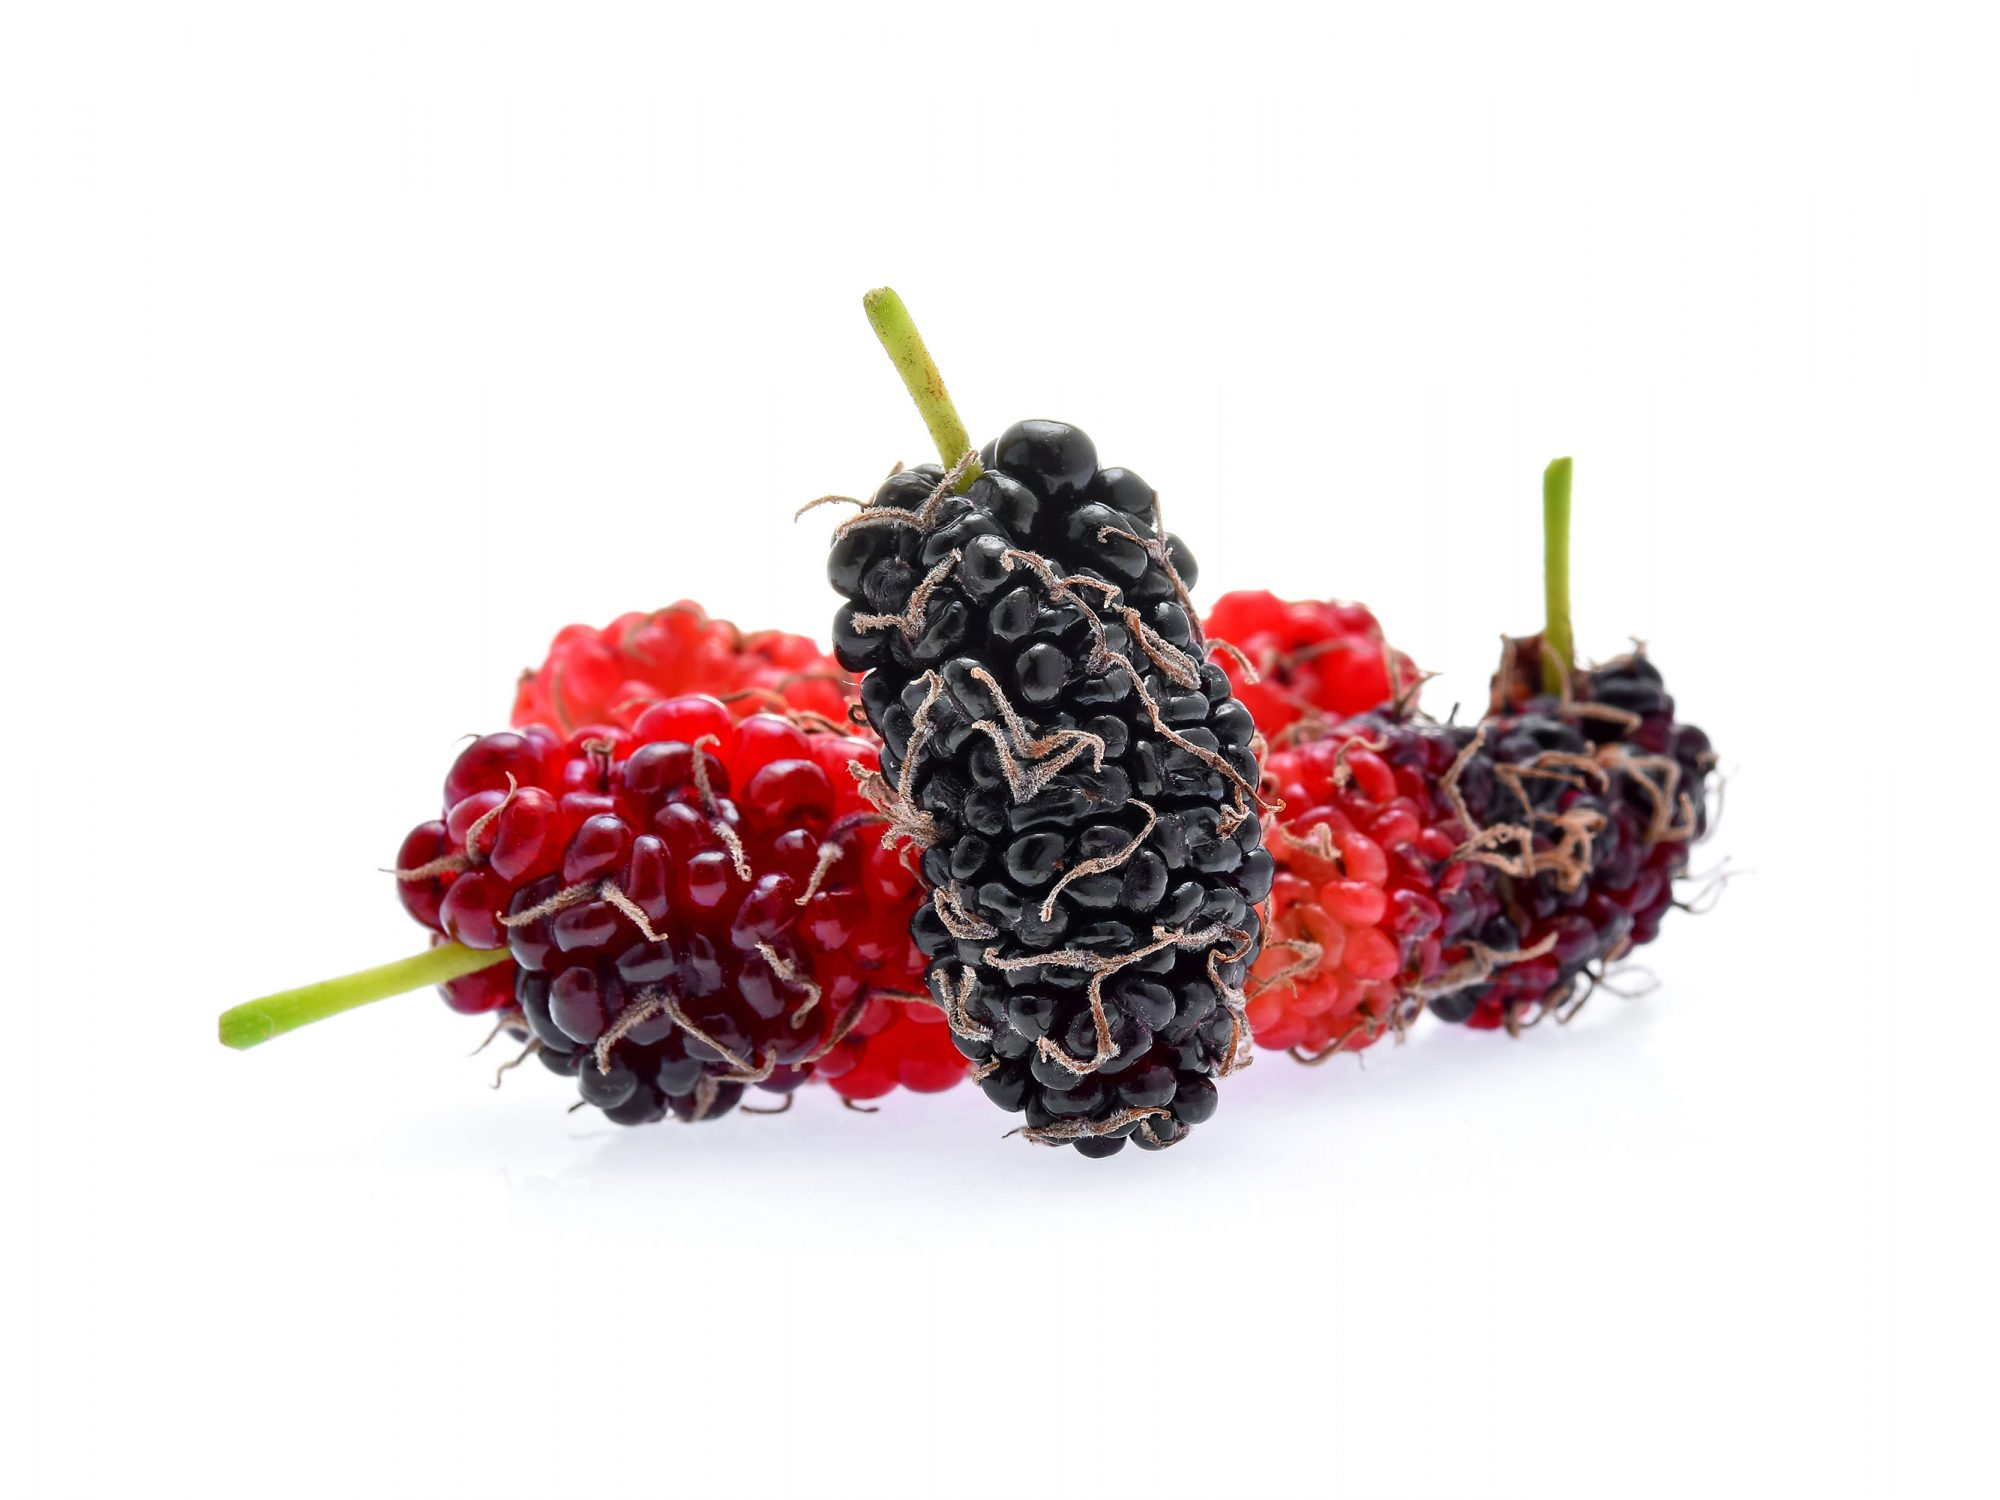 mulberries on white background